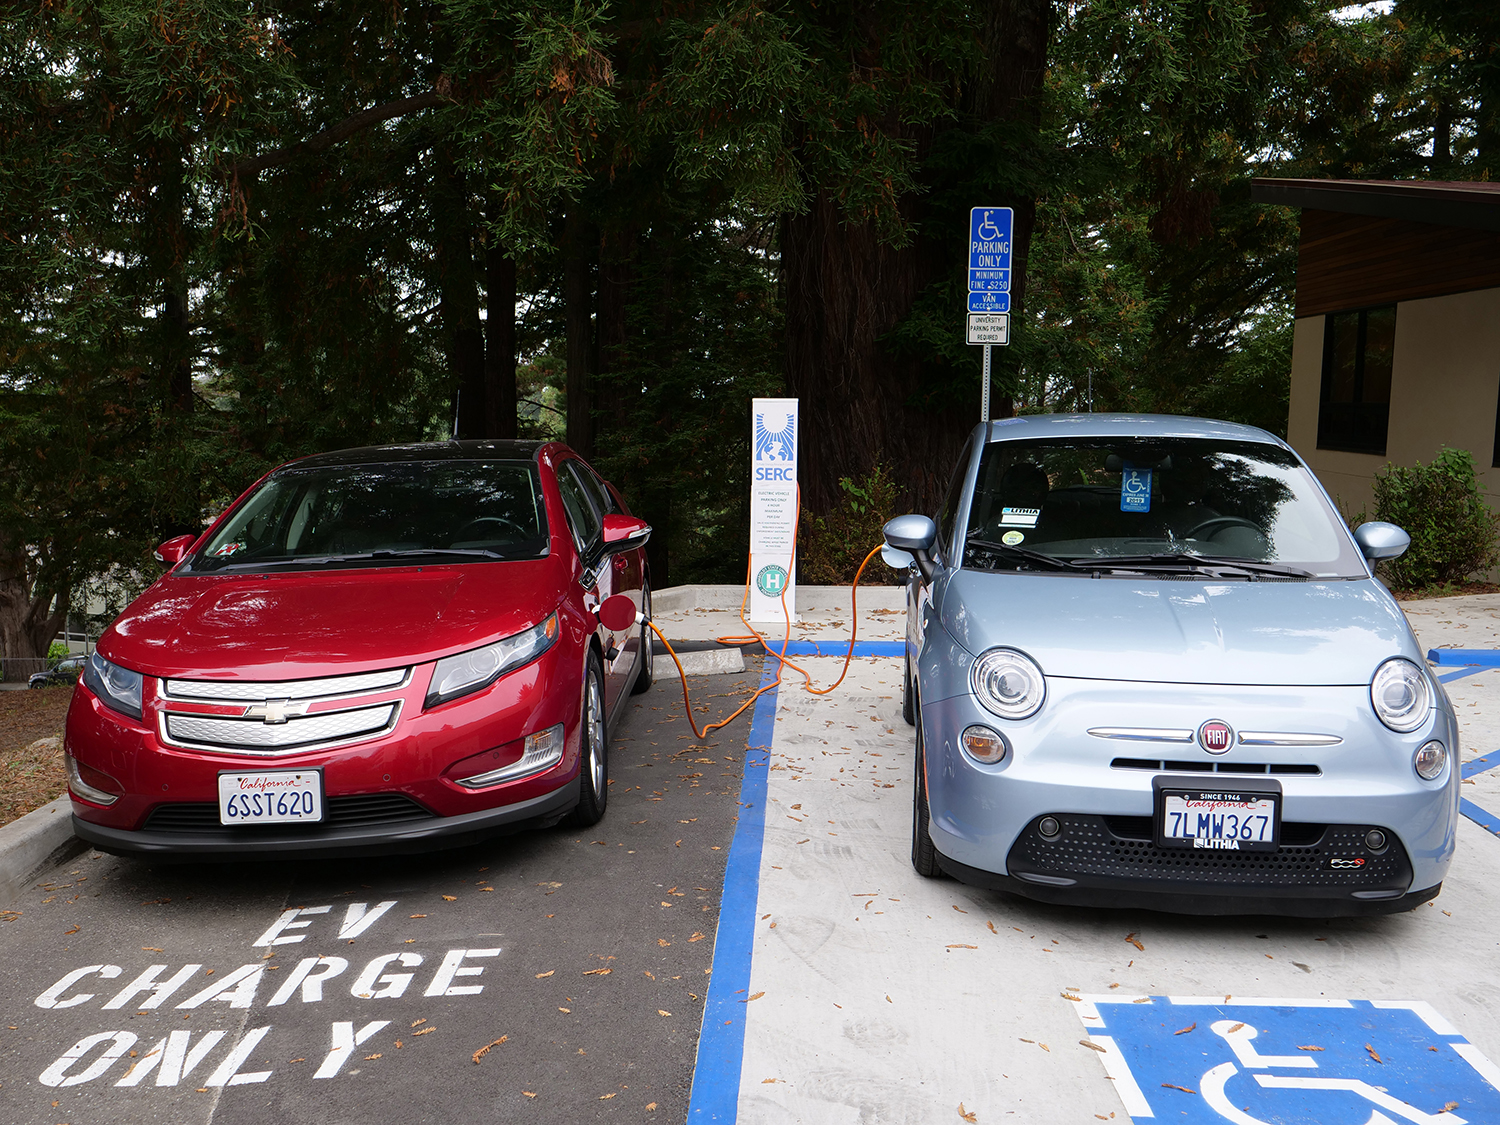 Two cars, with the fuel lines crossing over each other, charge beneath redwoods